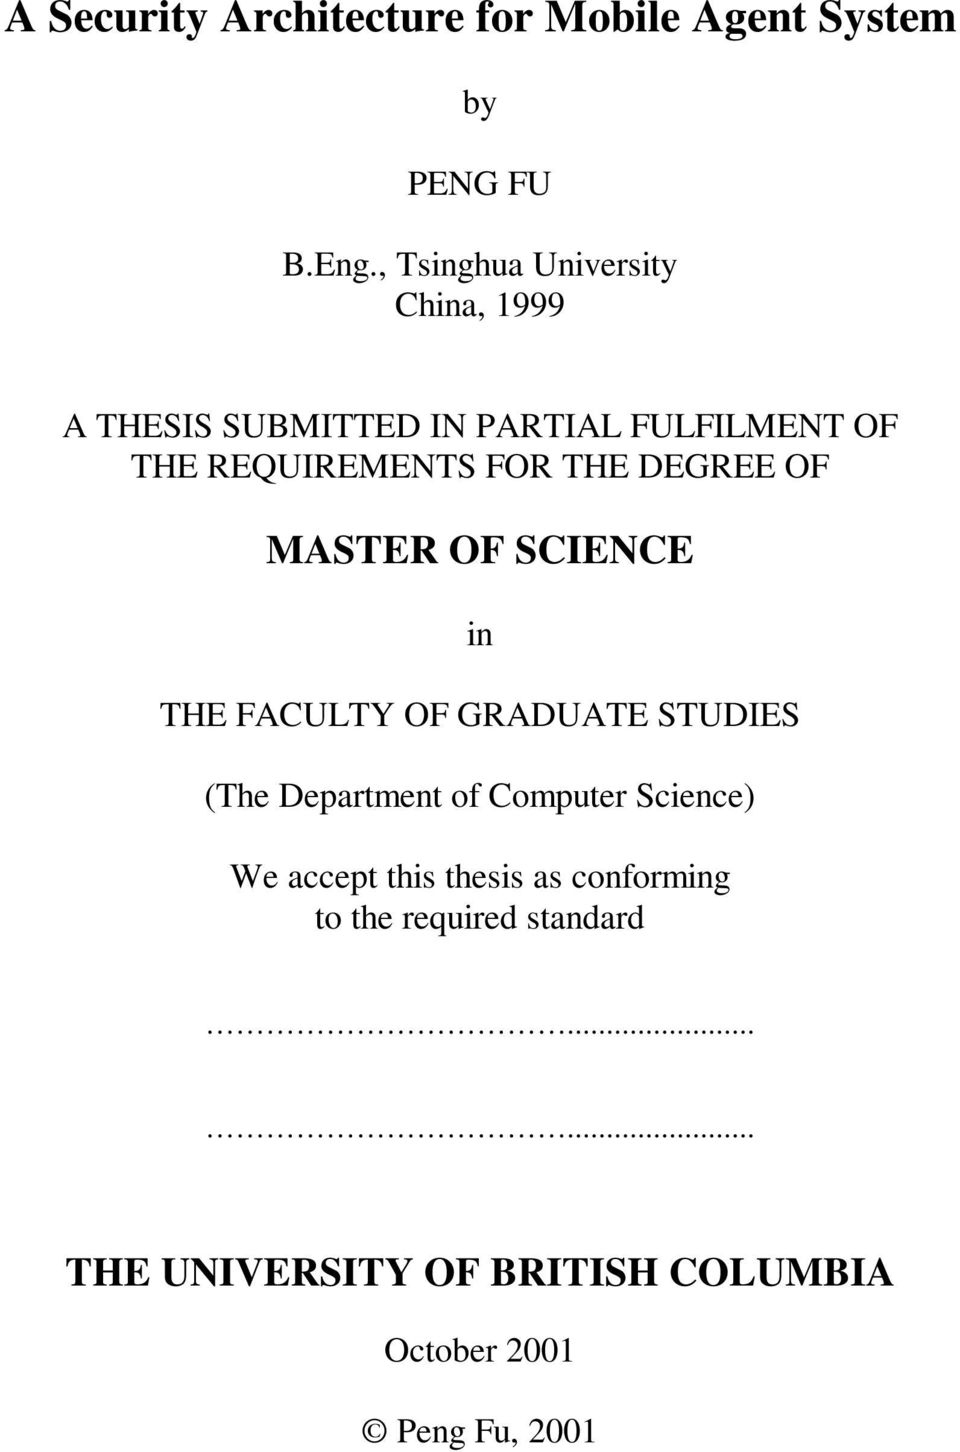 THE DEGREE OF MASTER OF SCIENCE in THE FACULTY OF GRADUATE STUDIES (The Department of Computer